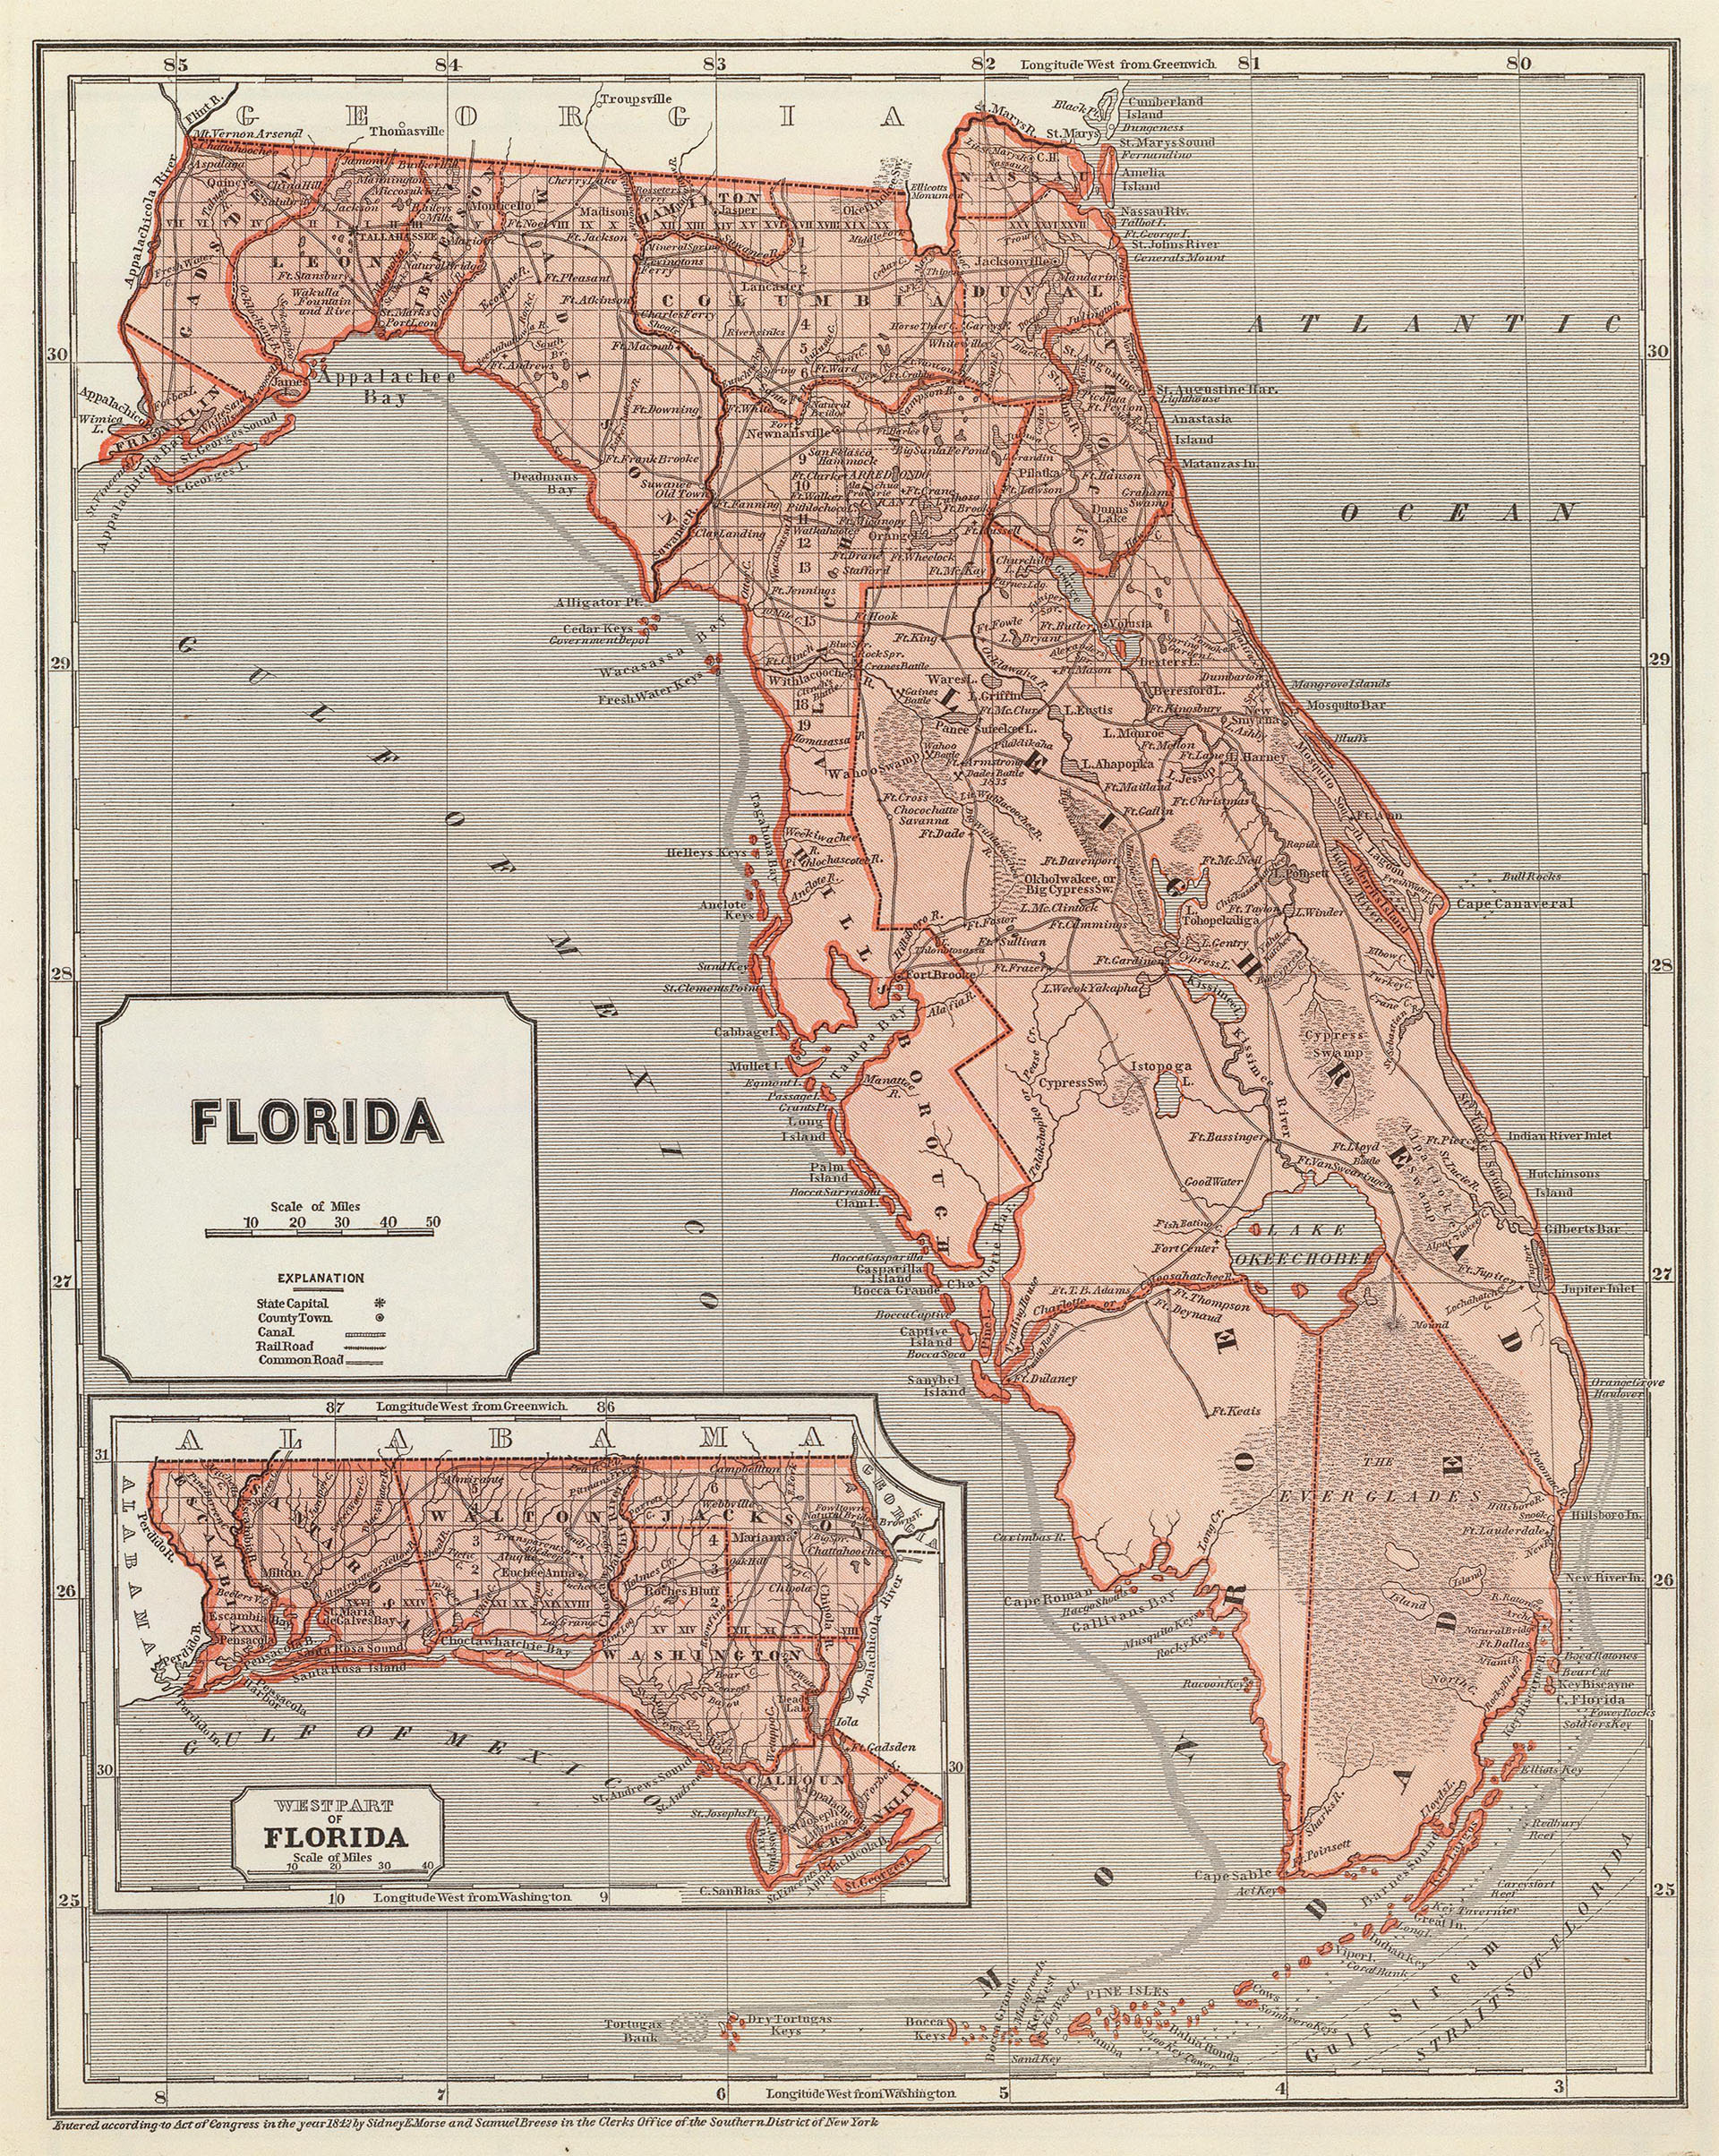 map of alabama, show map of florida, map of n e florida, map of florida counties, map of florida gulf coast, map of florida panhandle, map of florida and bodies of water, full large map of florida, map of northwestern florida, www.map of florida, map of northern florida, sarasota florida, map of vienna florida, map of west florida beaches, printable detailed map of central florida, map of florida west coast, map of west central florida, map of north florida, map of southwestern florida, map of midwestern florida, on including map of western florida